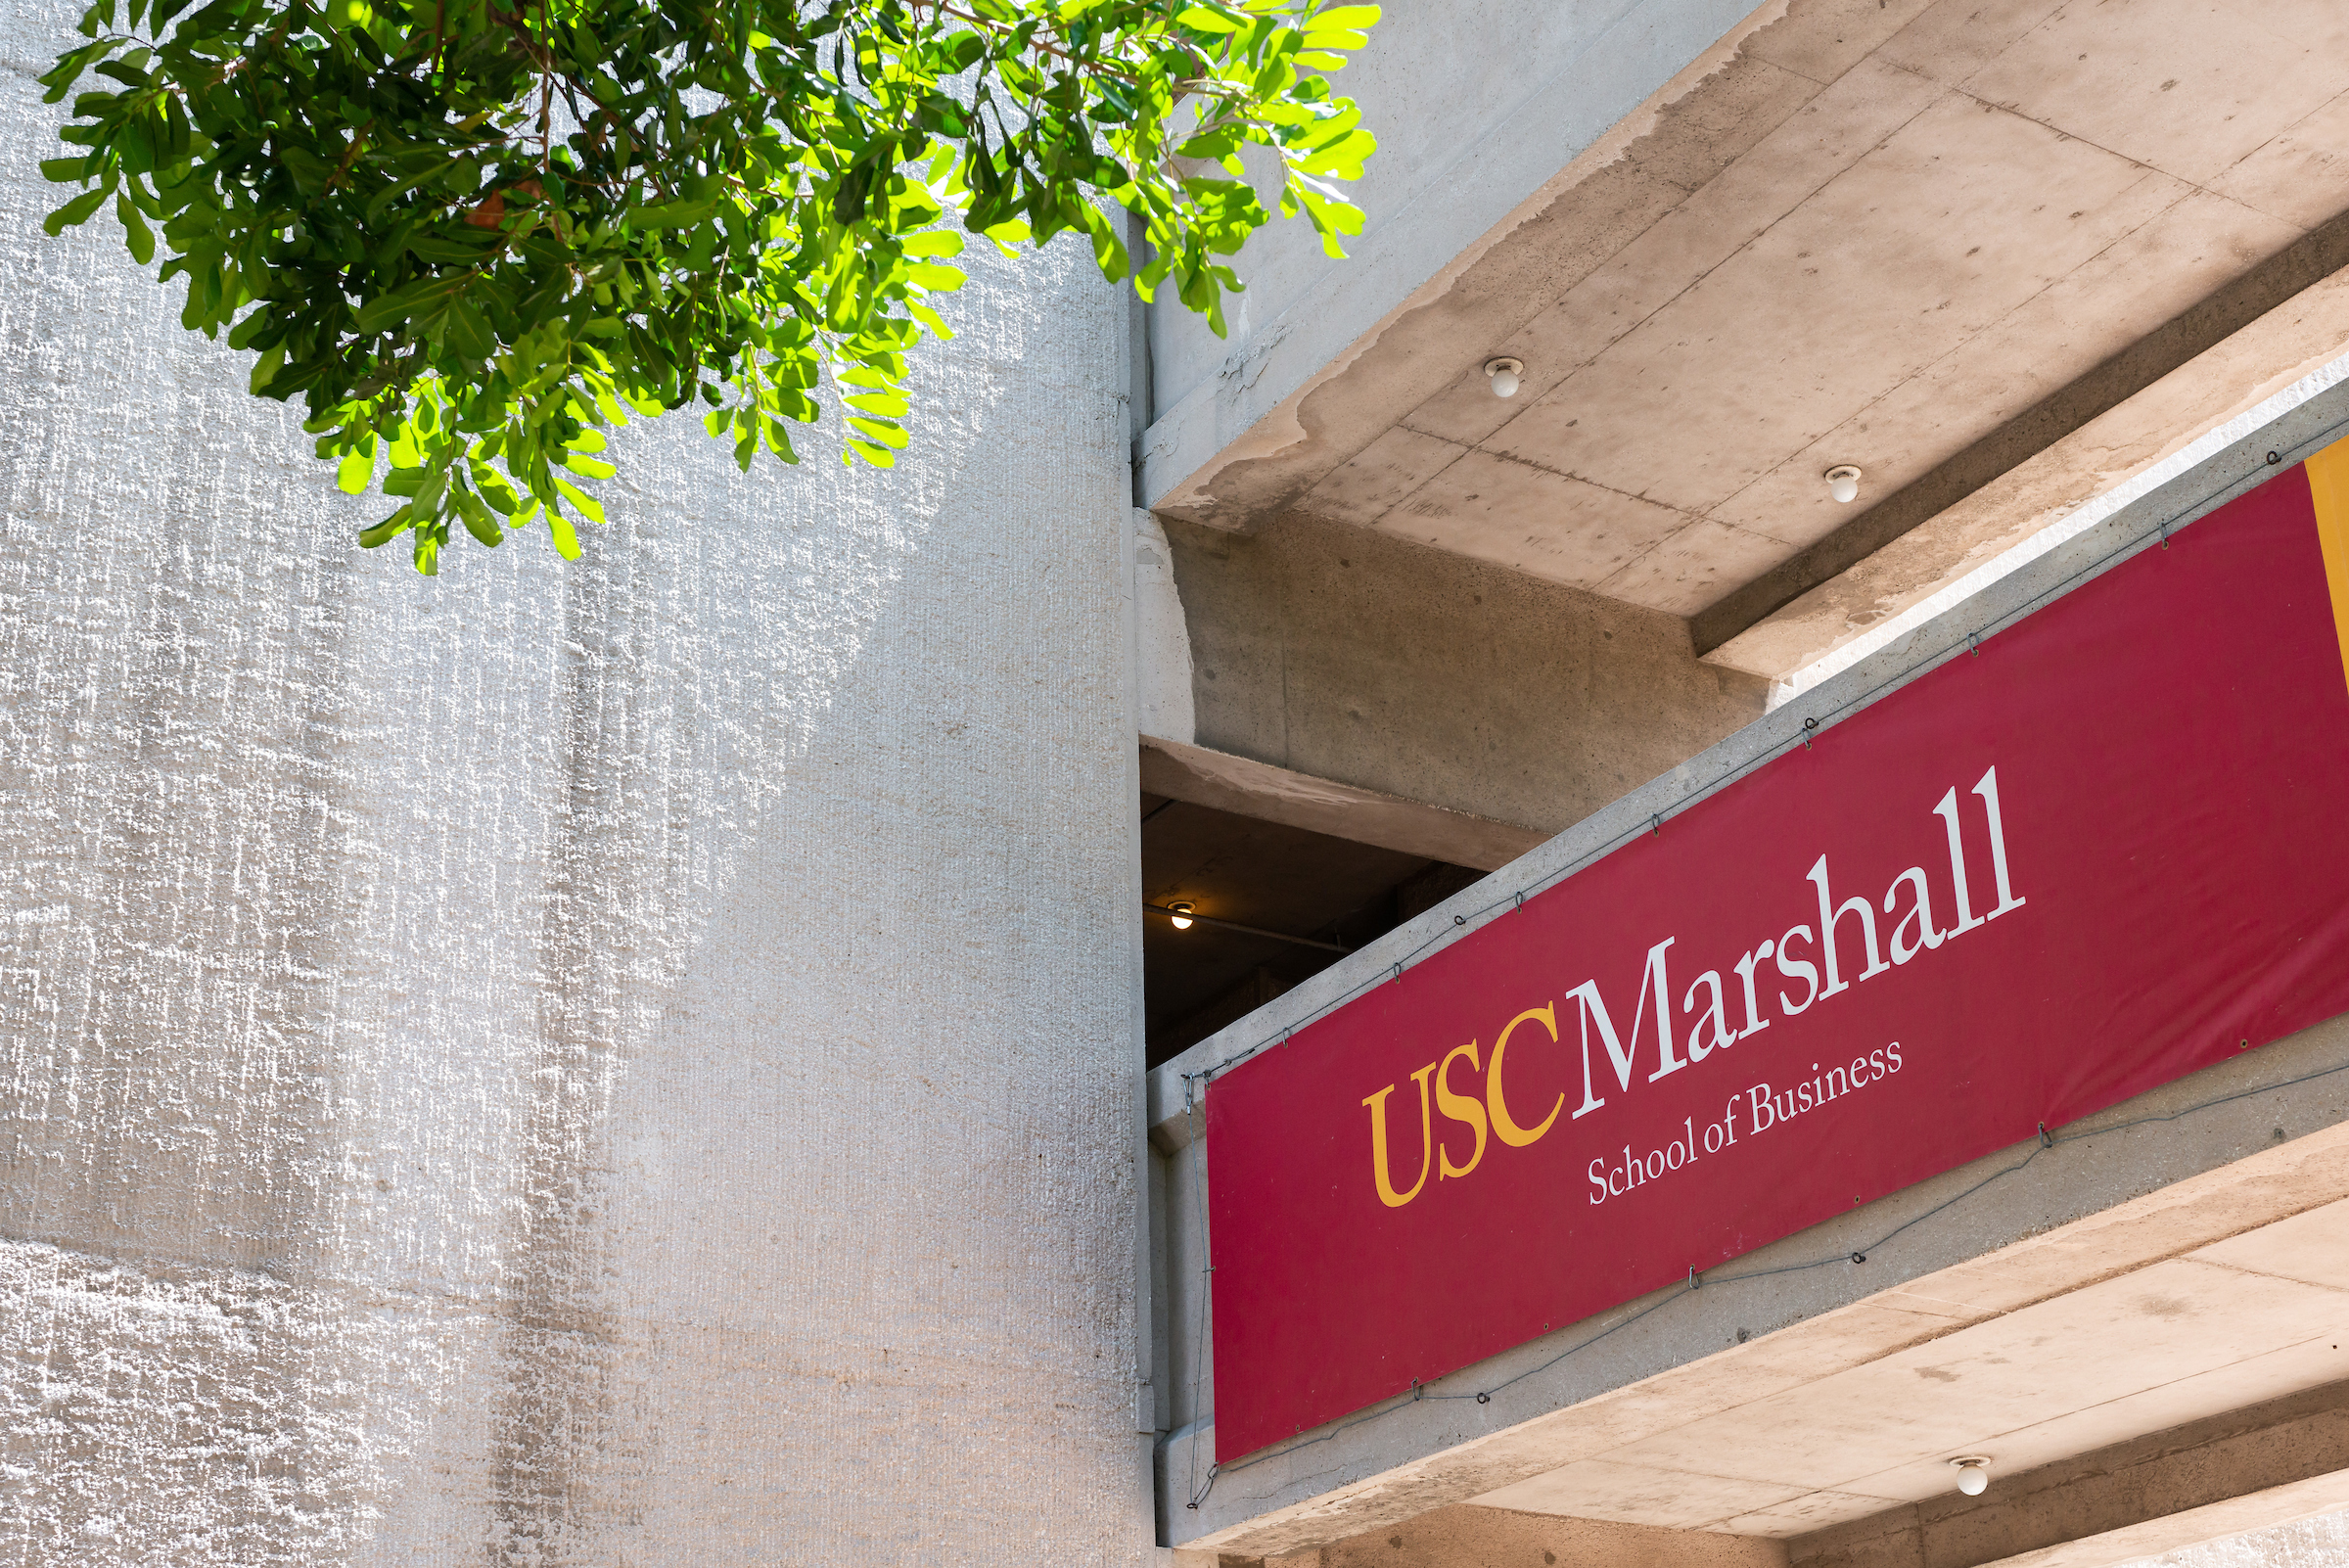 University of Southern California Marshall School of Business